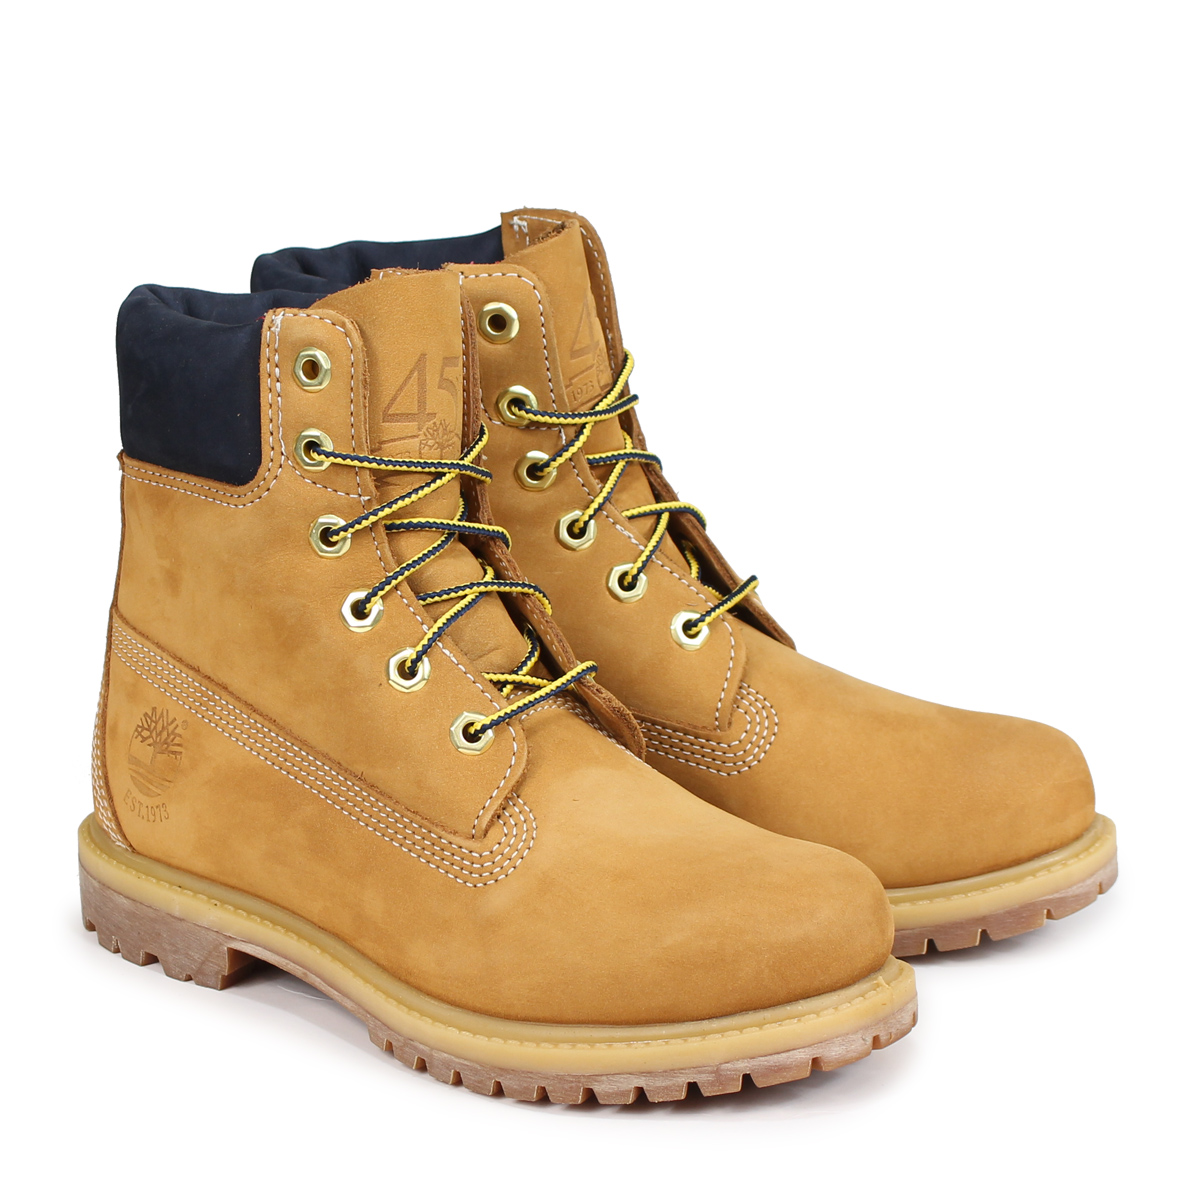 6 inches of Timberland 6 INCH PREMIUM BOOTS Timberland boots lady's W ??????? A1SI1 [193]